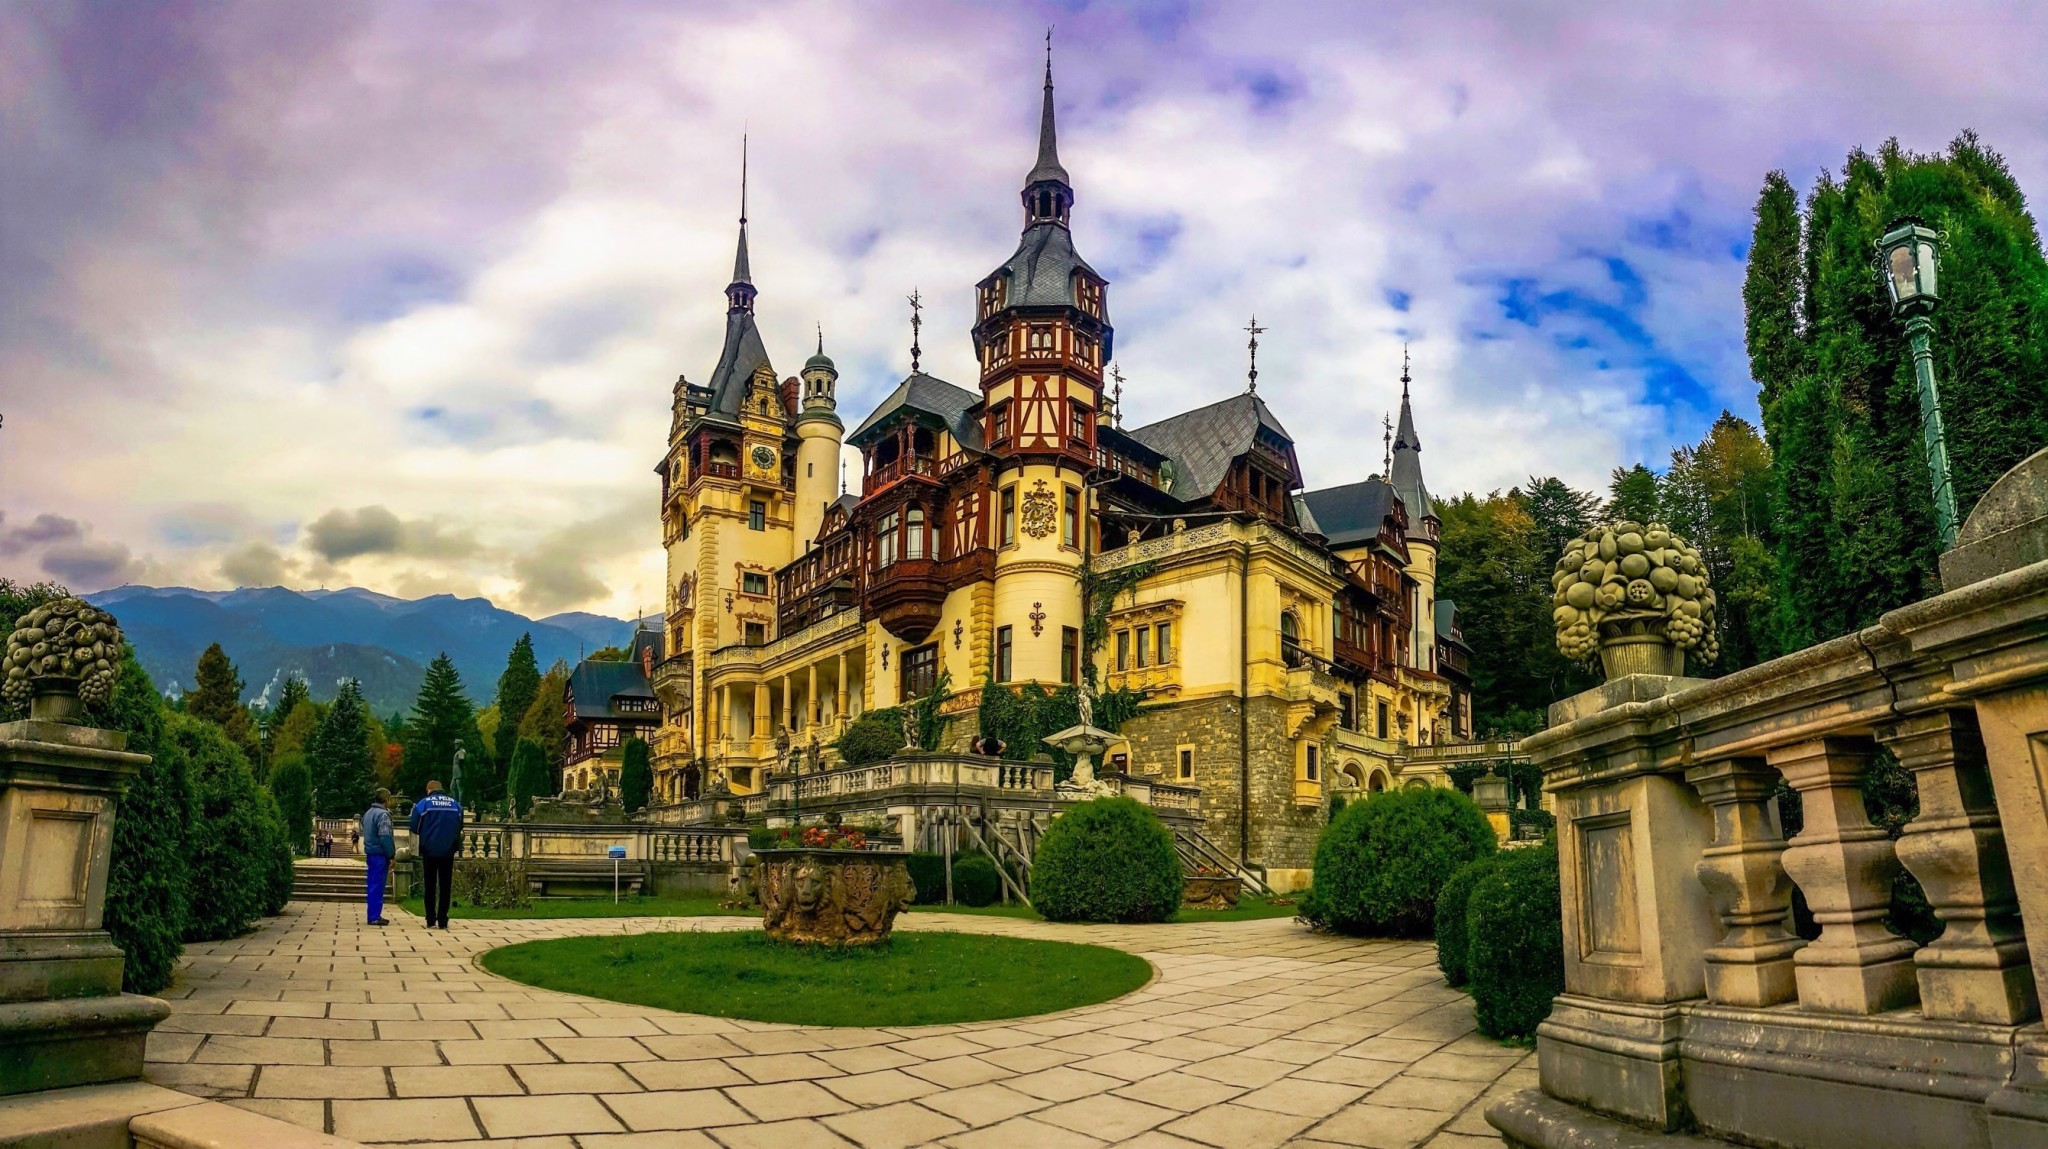 Castles in Romania drive traveler interest - FamilyTravel.com